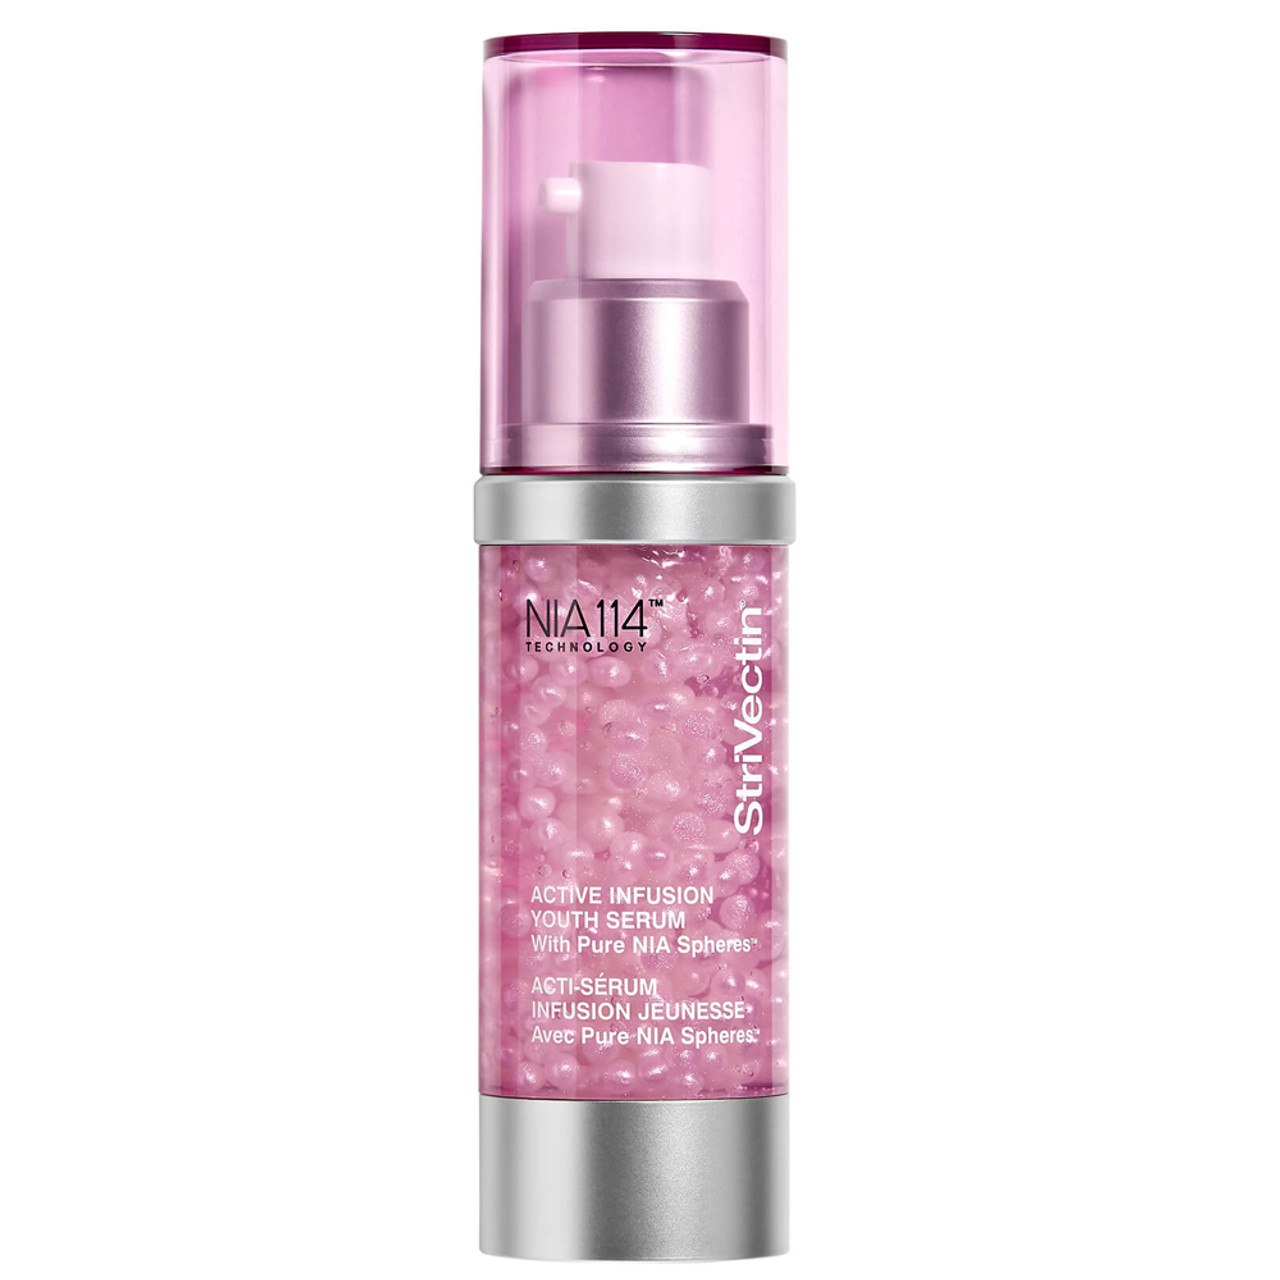 StriVectin Multi-Action Active Infusion Youth Serum BeautifiedYou.com